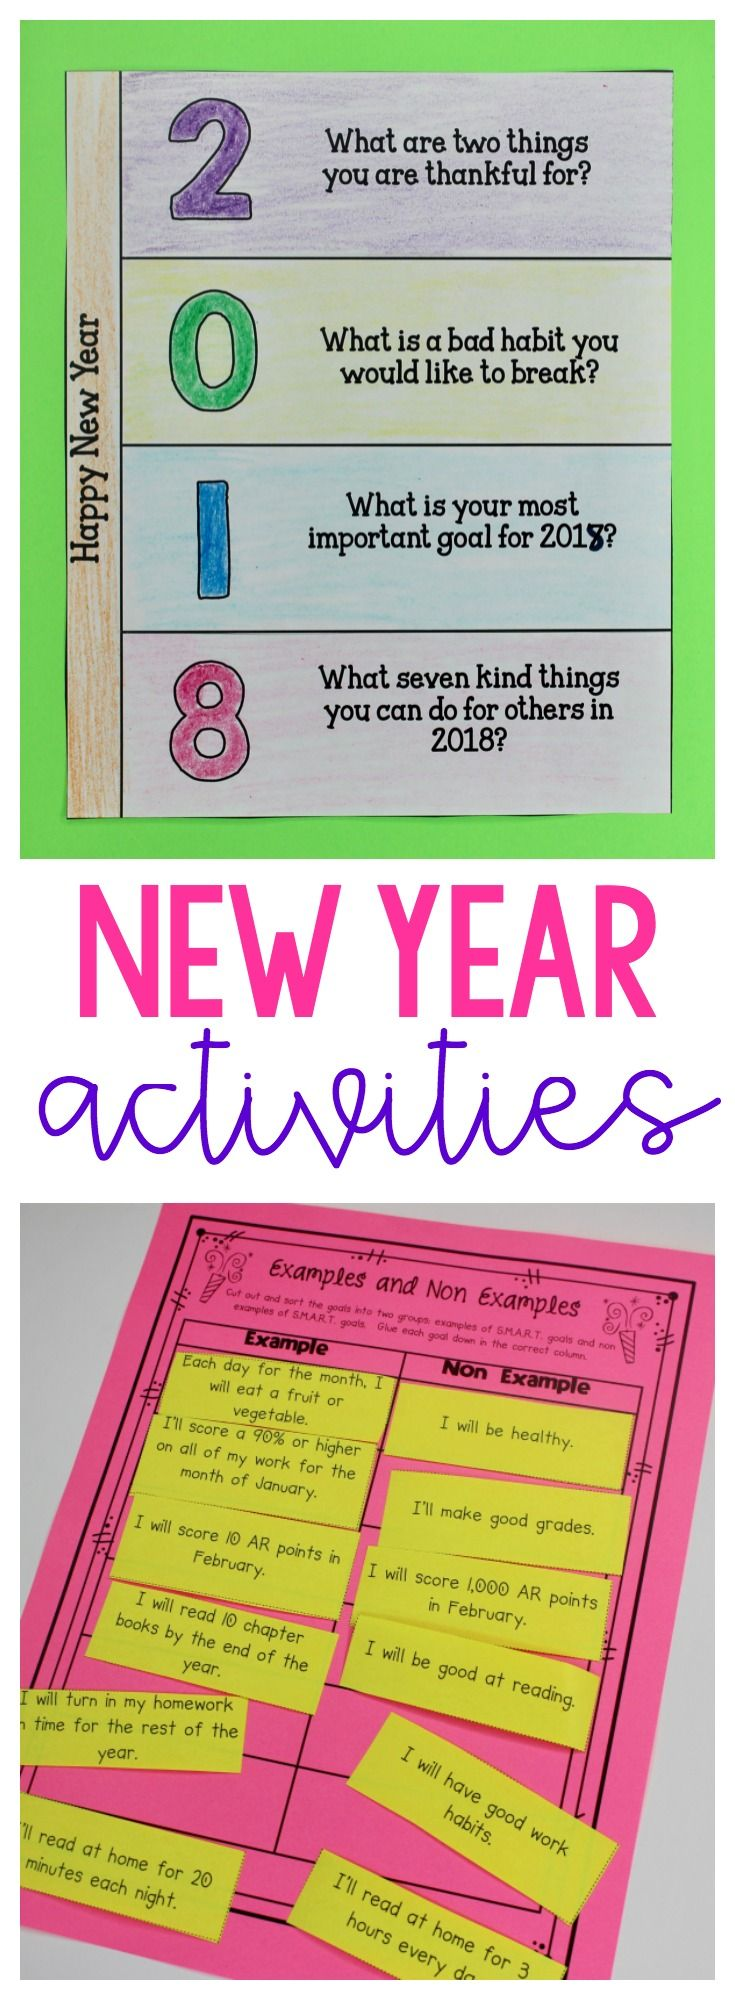 Teach students how to create SMART goals to help set new year goals. Great for upper elementary!